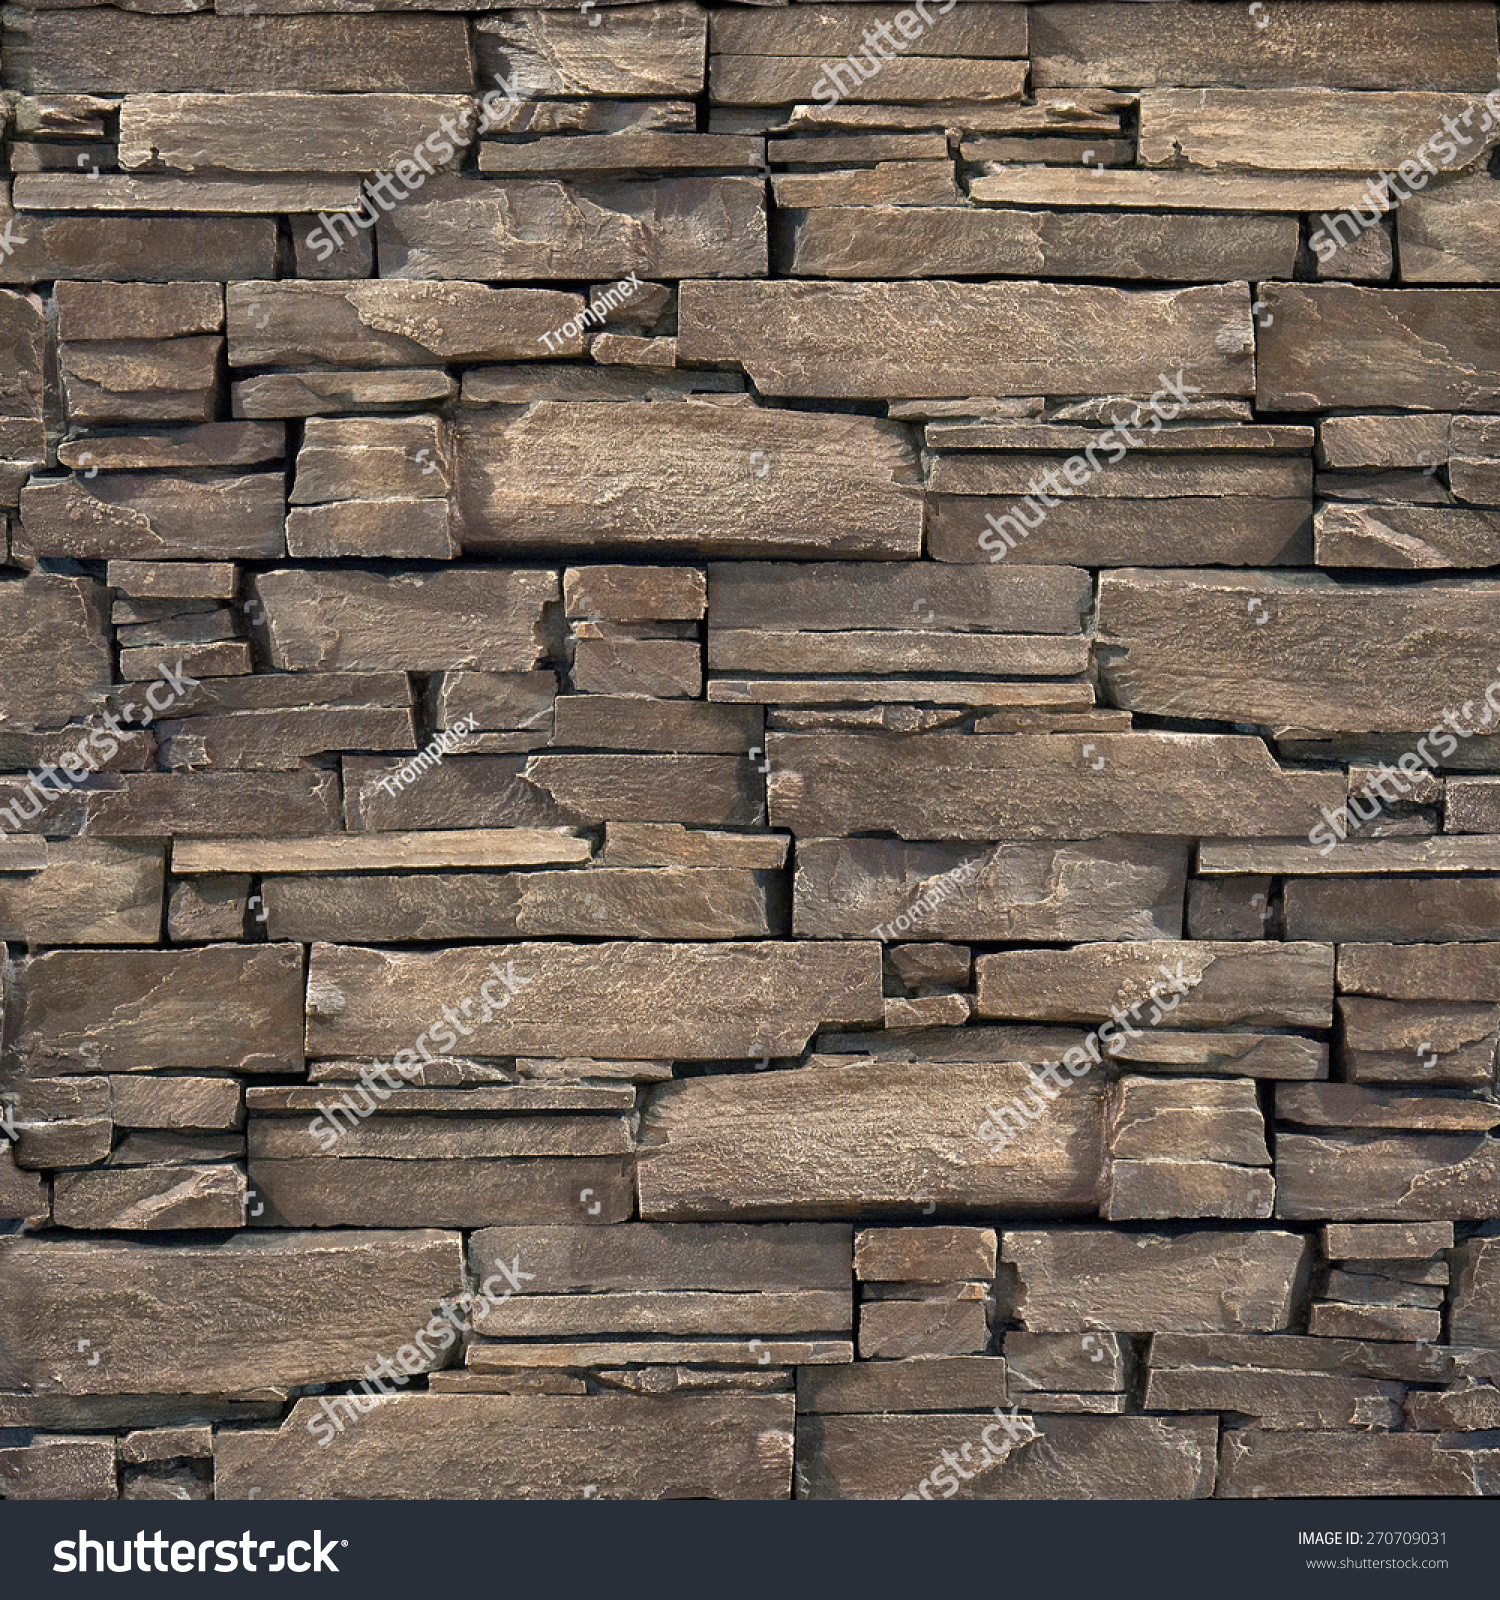 Decorative Stone Wall   Interior Panel Pattern   Design Wallpaper    Seamless Background   Continuous Replication